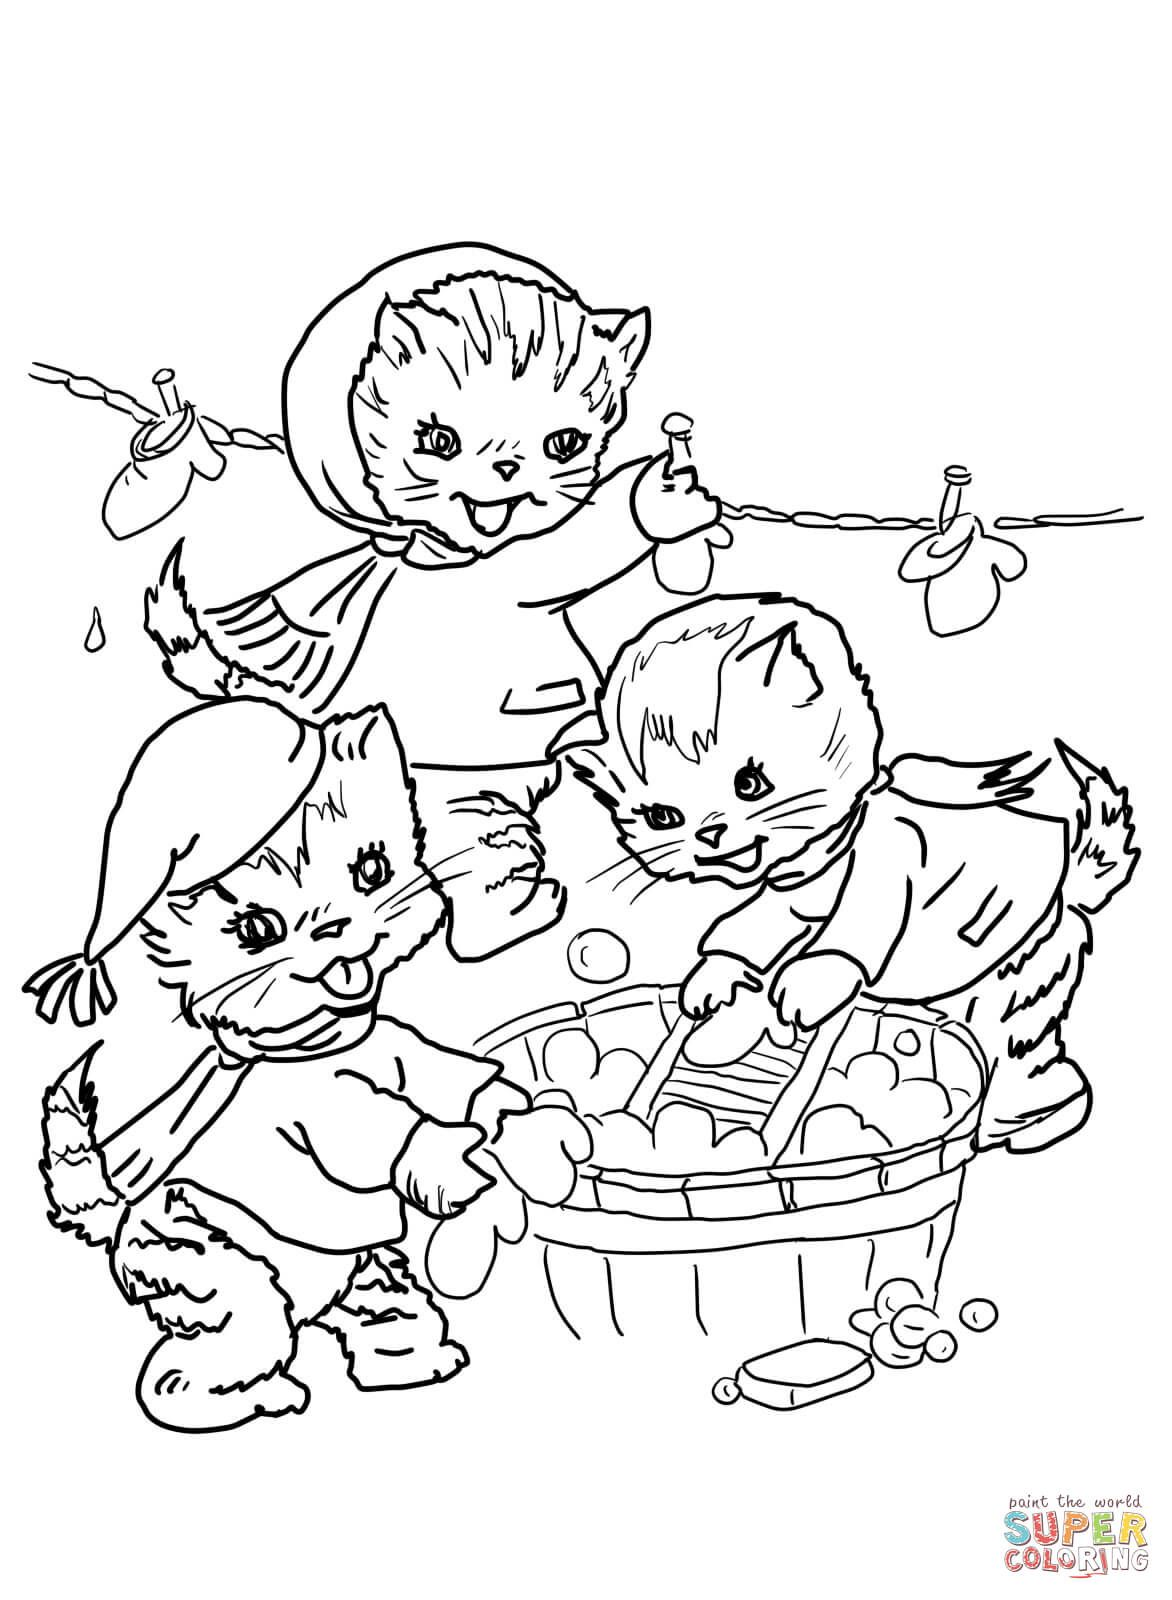 Three Little Kittens Mittens Coloring Page | Coloring Page